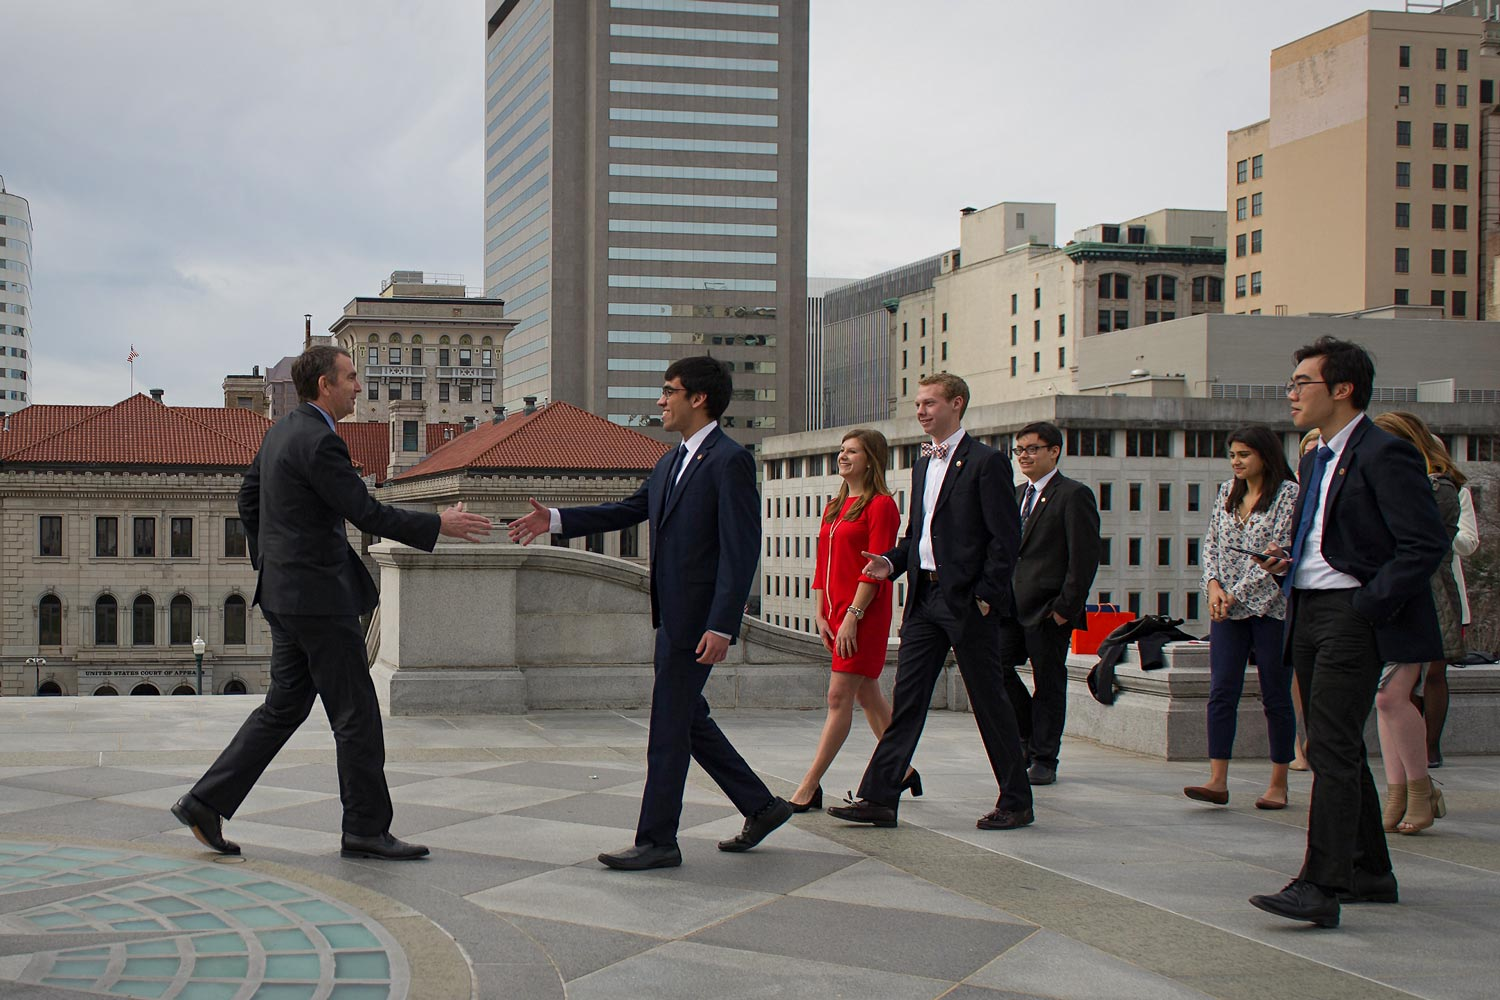 Young people walk toward a man in a suit, preparing for a handshake